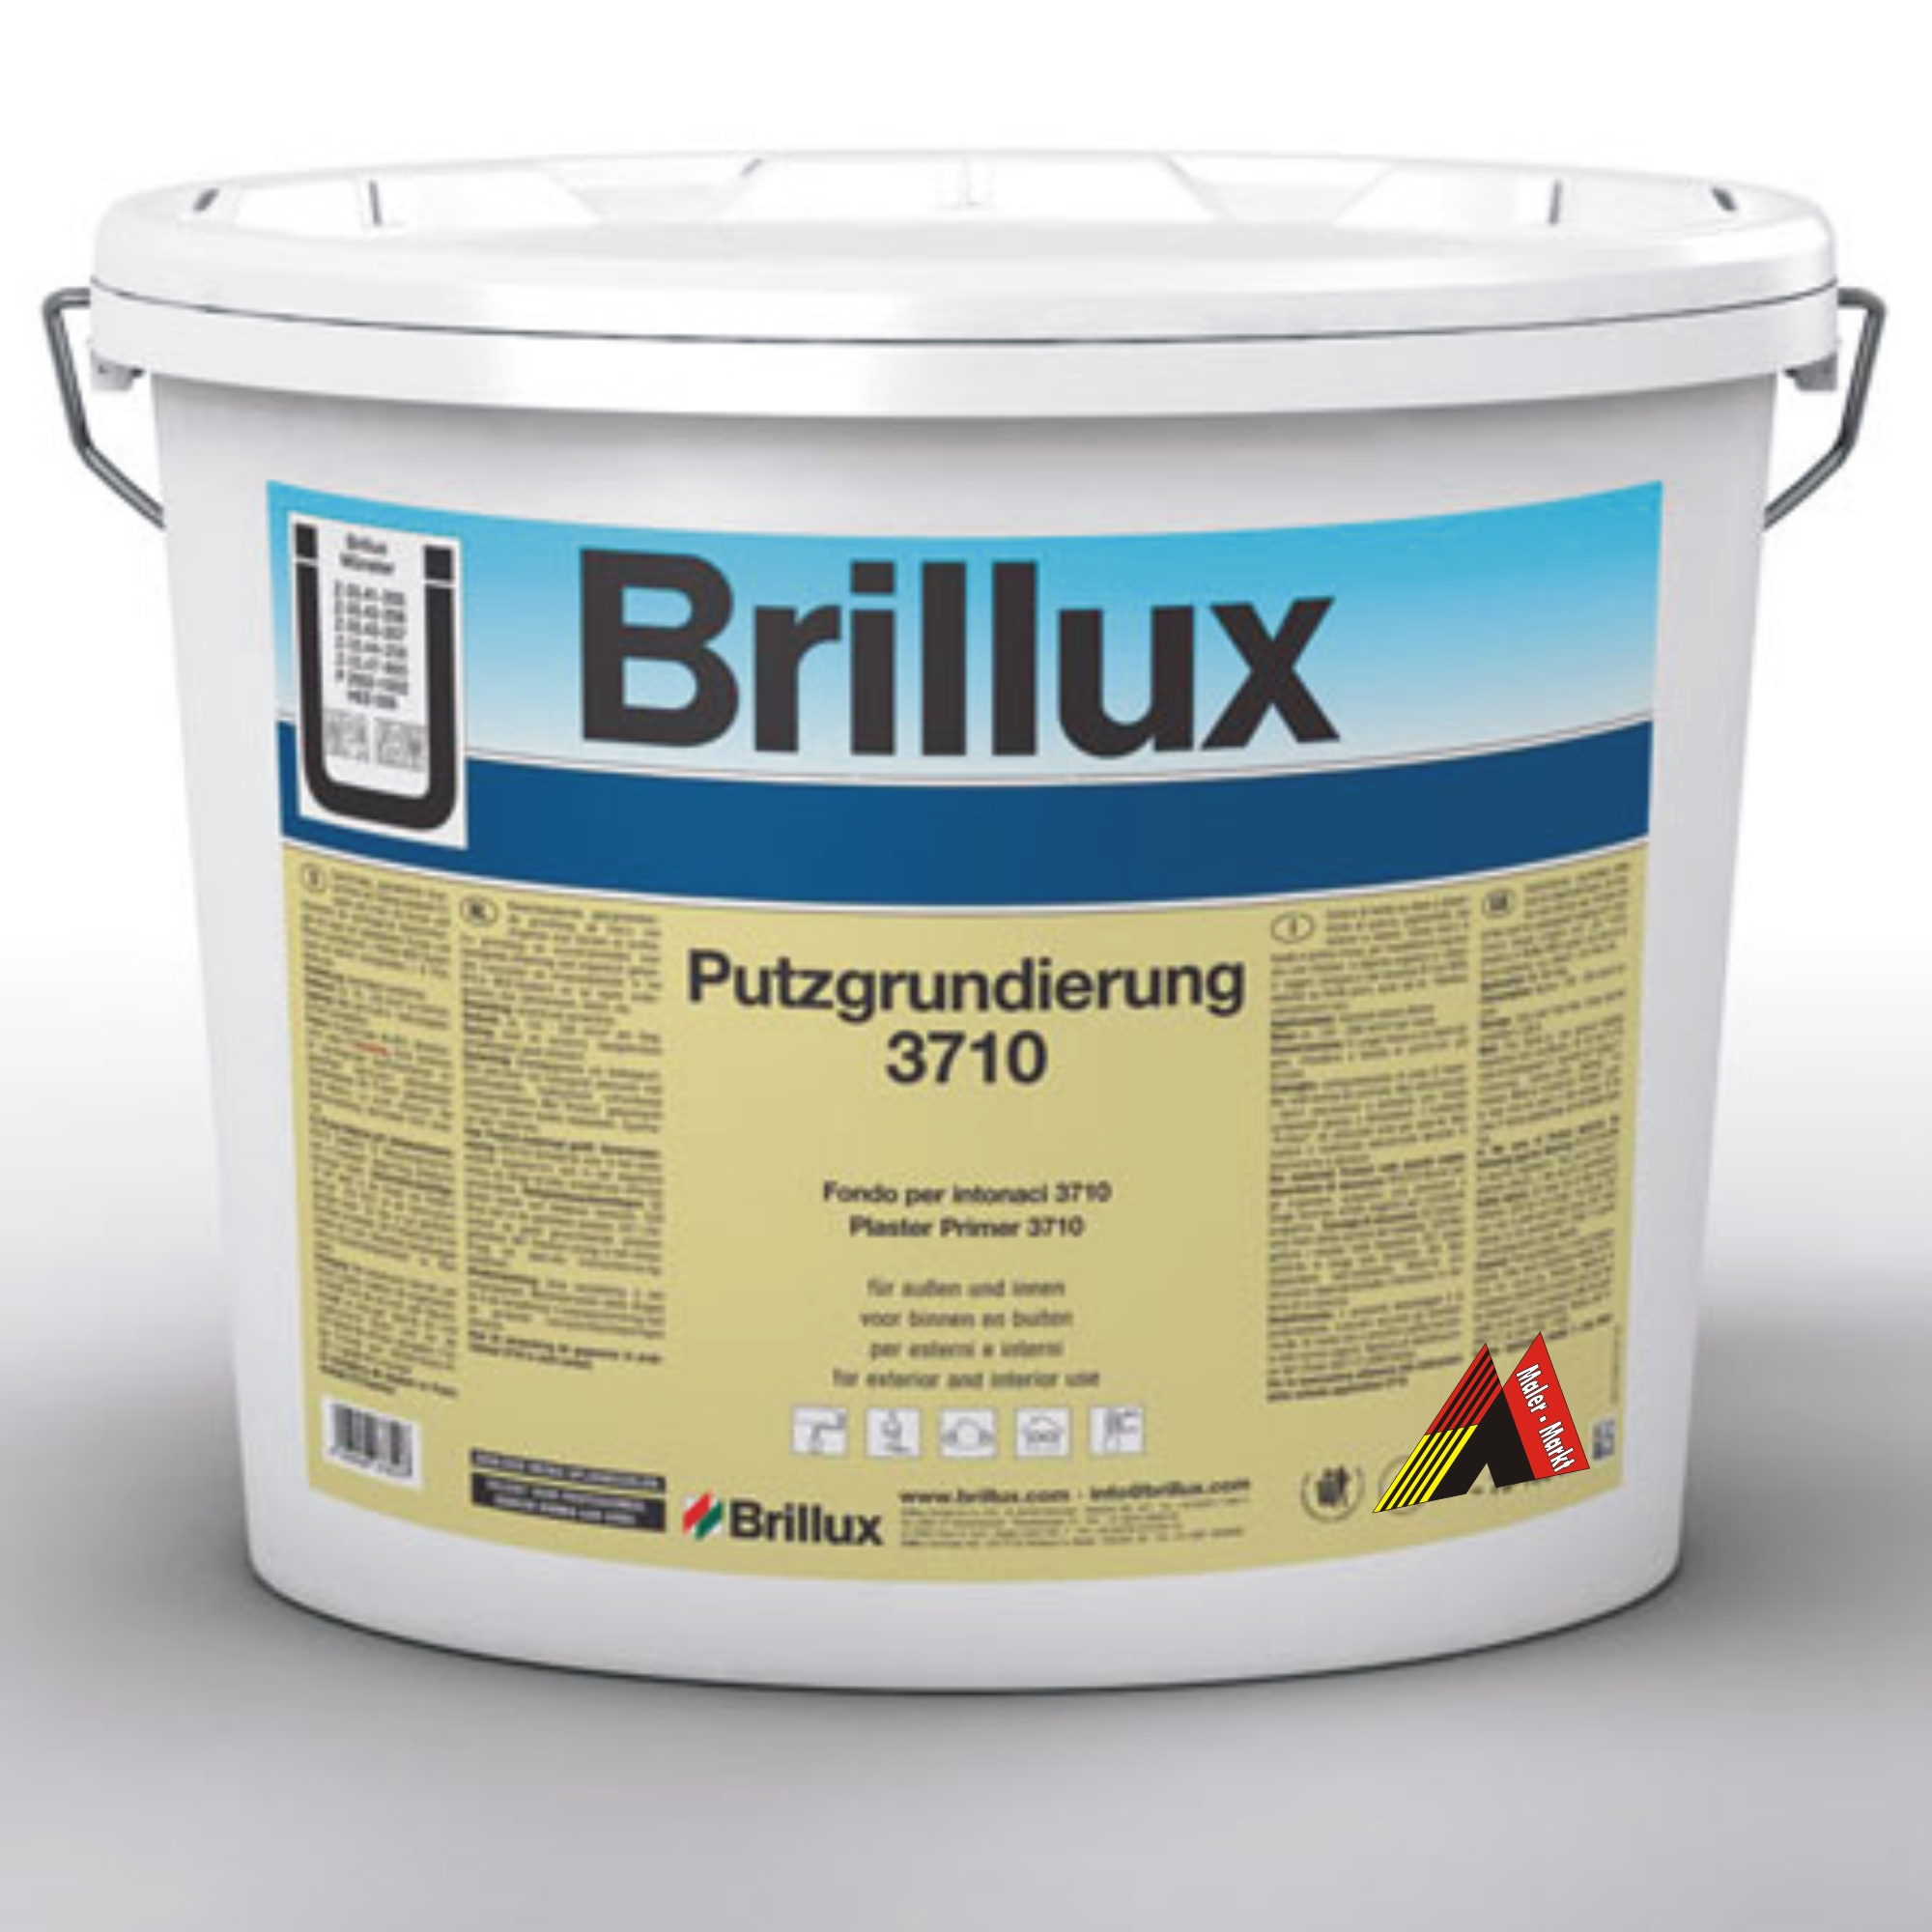 brillux putzgrundierung 3710 15 liter euro pro liter grundierung farbe ebay. Black Bedroom Furniture Sets. Home Design Ideas